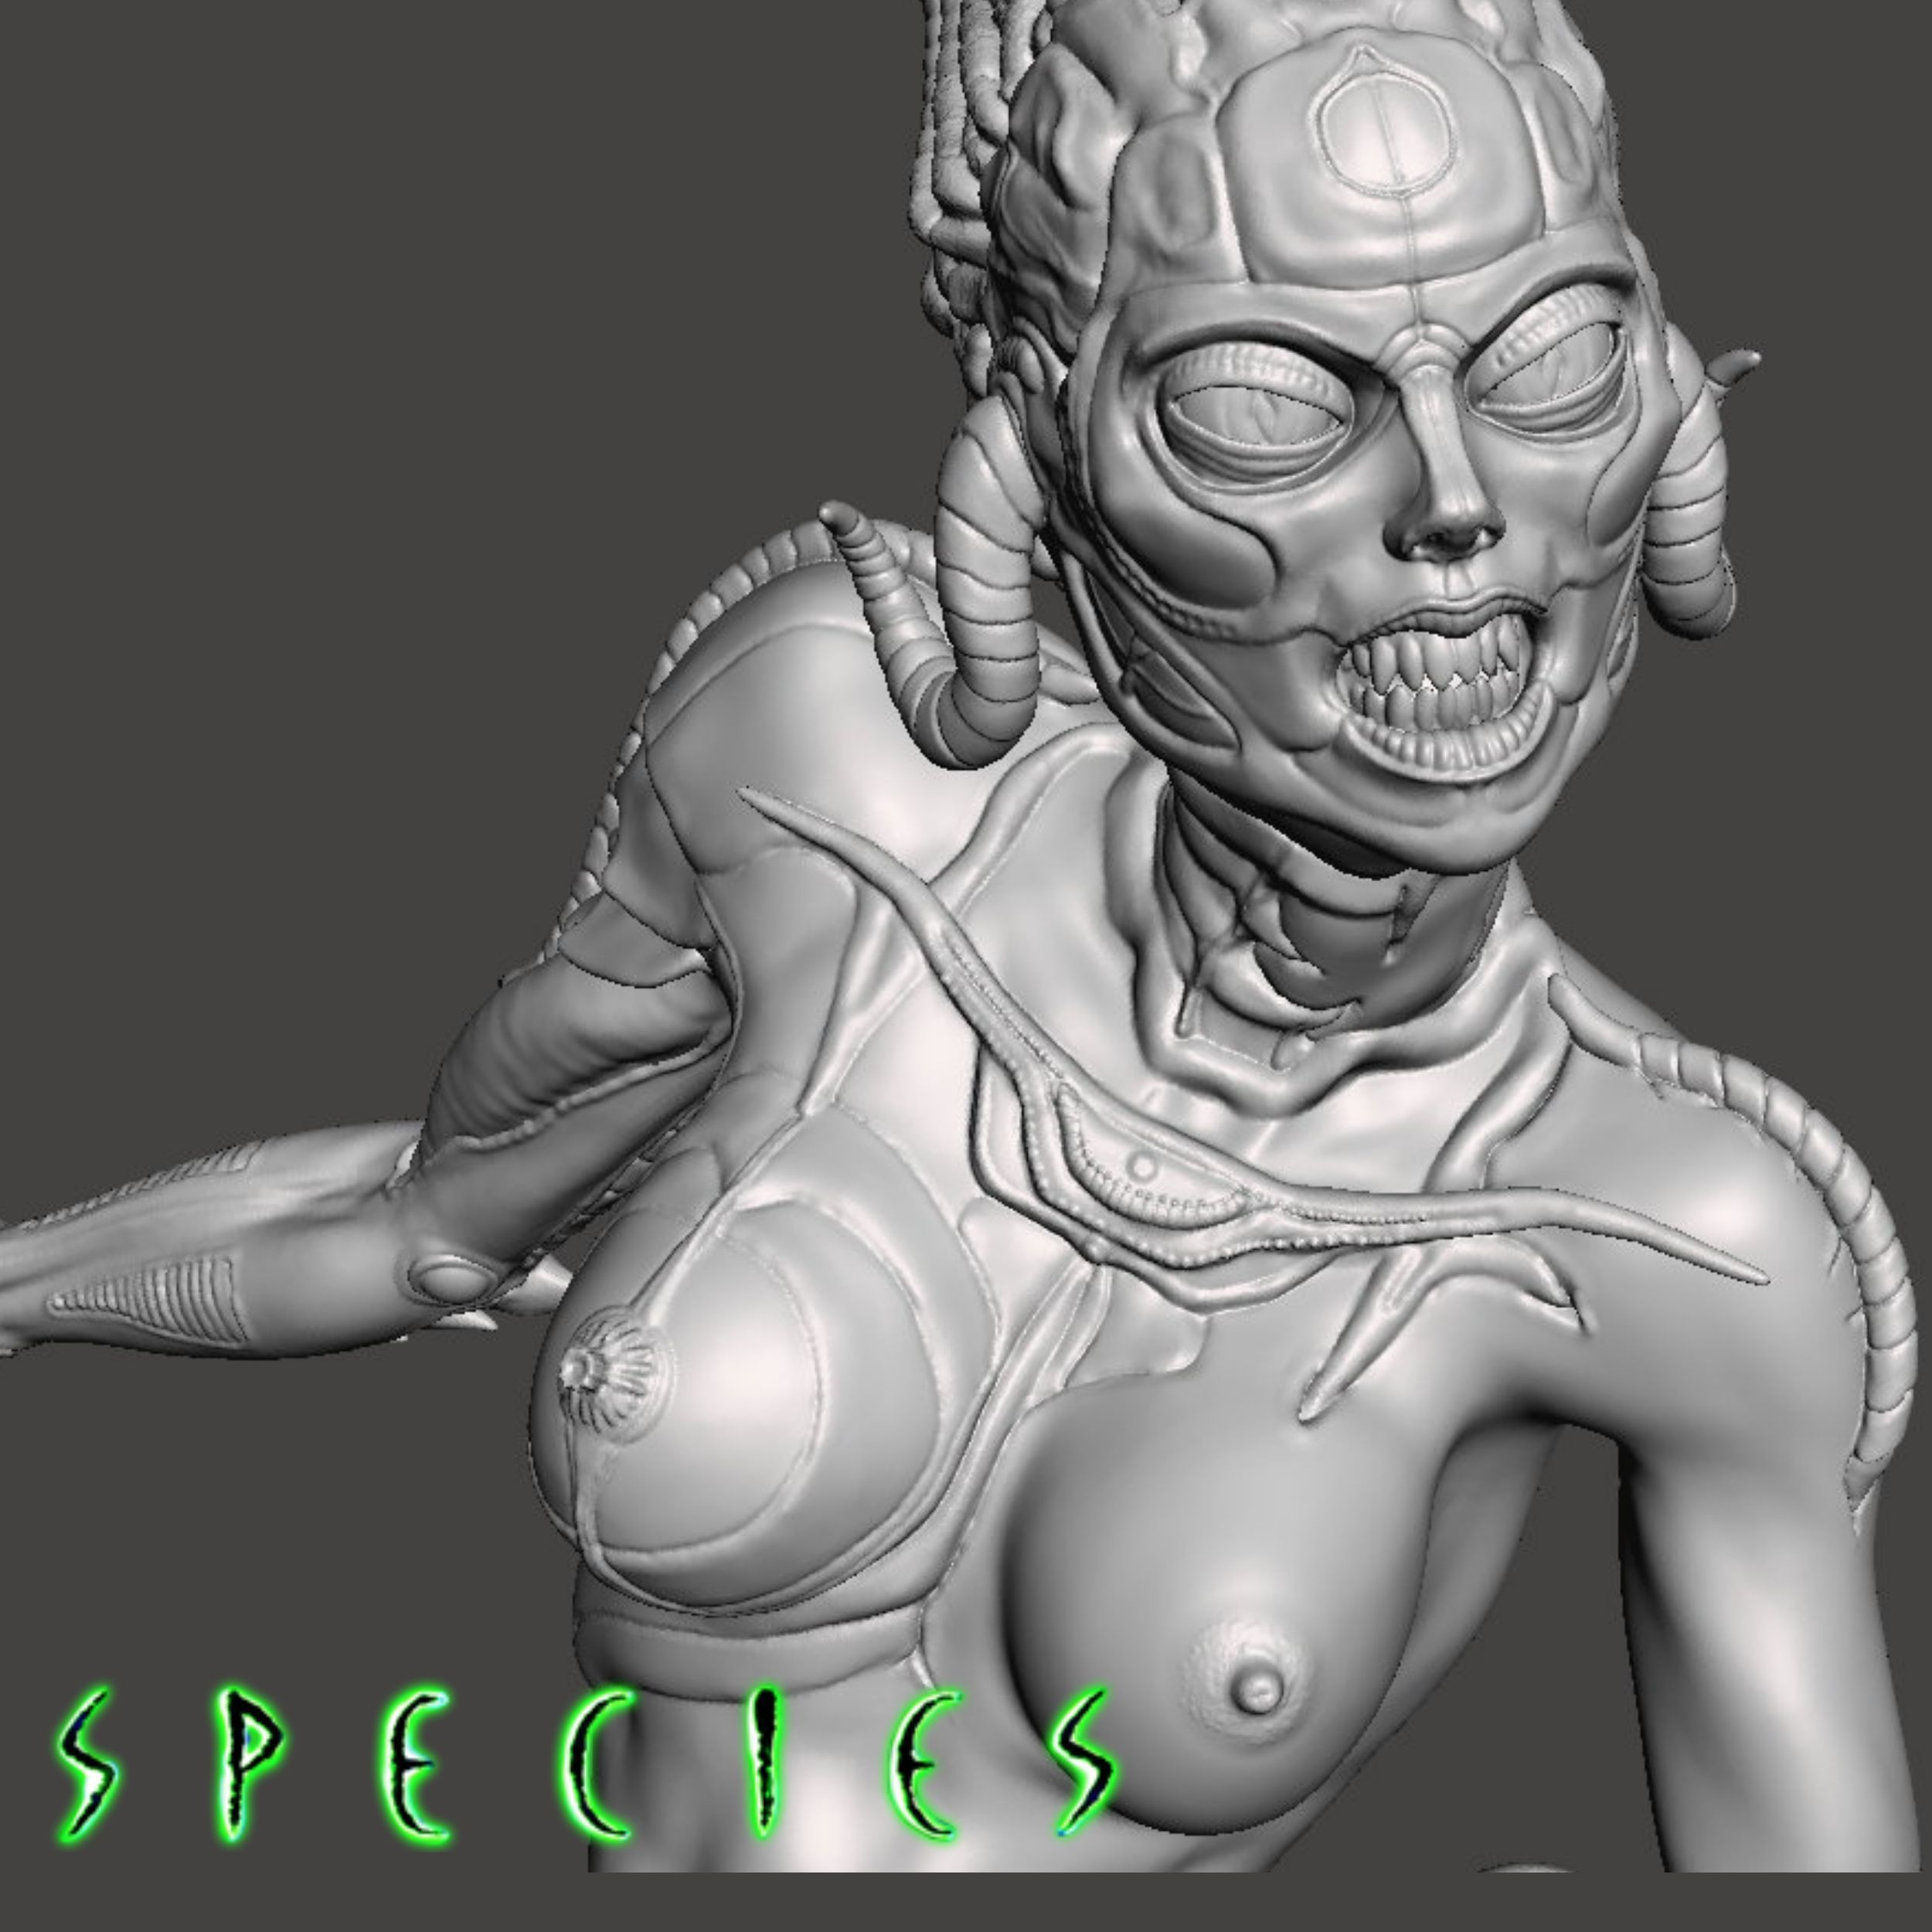 Image17.jpg Download STL file Alien Girl - SPECIES Part 1- by SPARX • 3D printable object, wikd2011